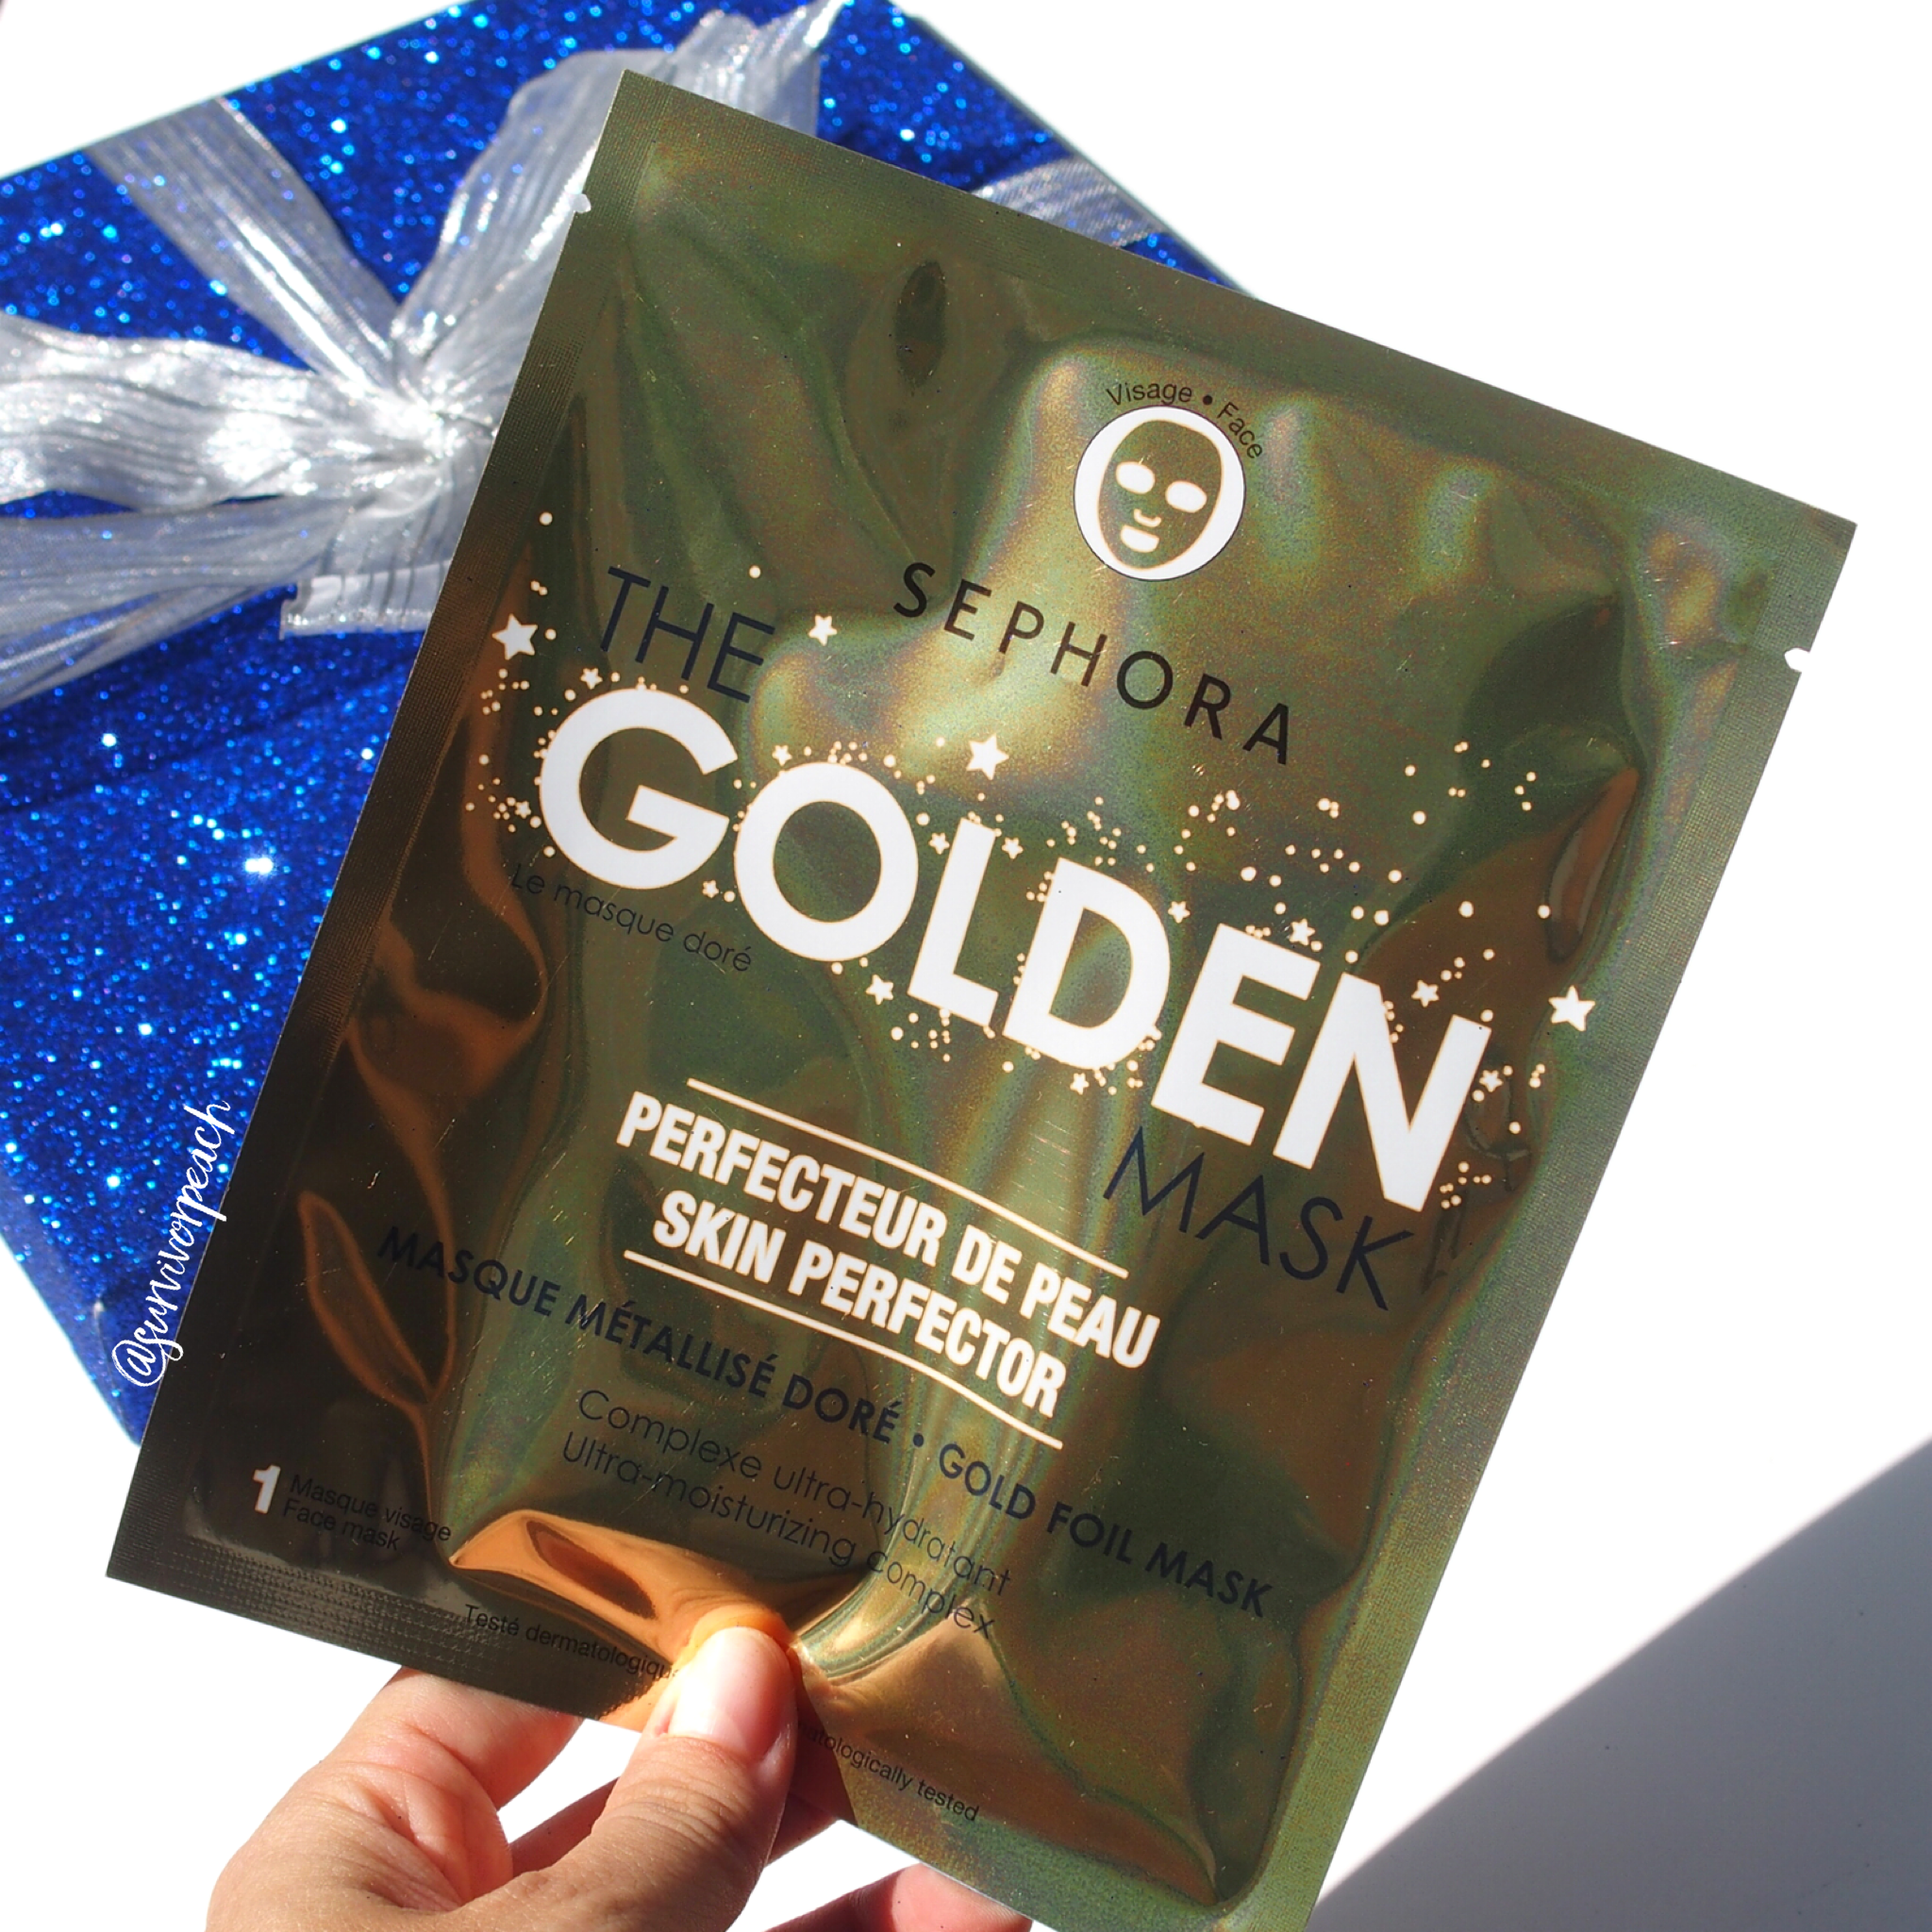 Sephora Collection Hero Mask - Foil Mask (Limited Edition 2018)